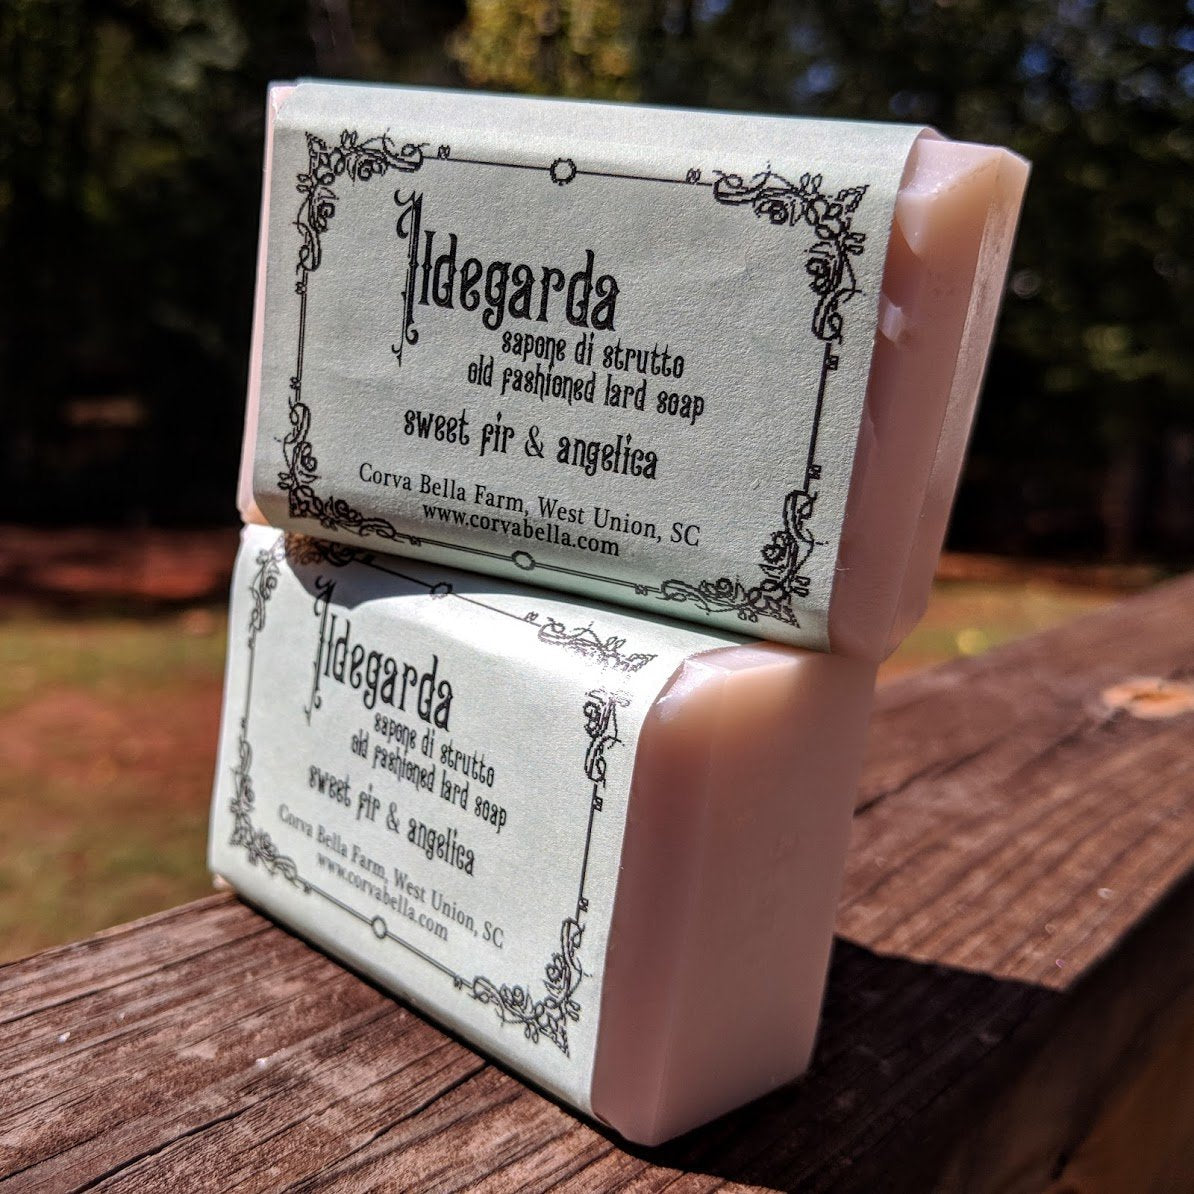 HILDEGARD lard soap - Sweet Fir & Angelica